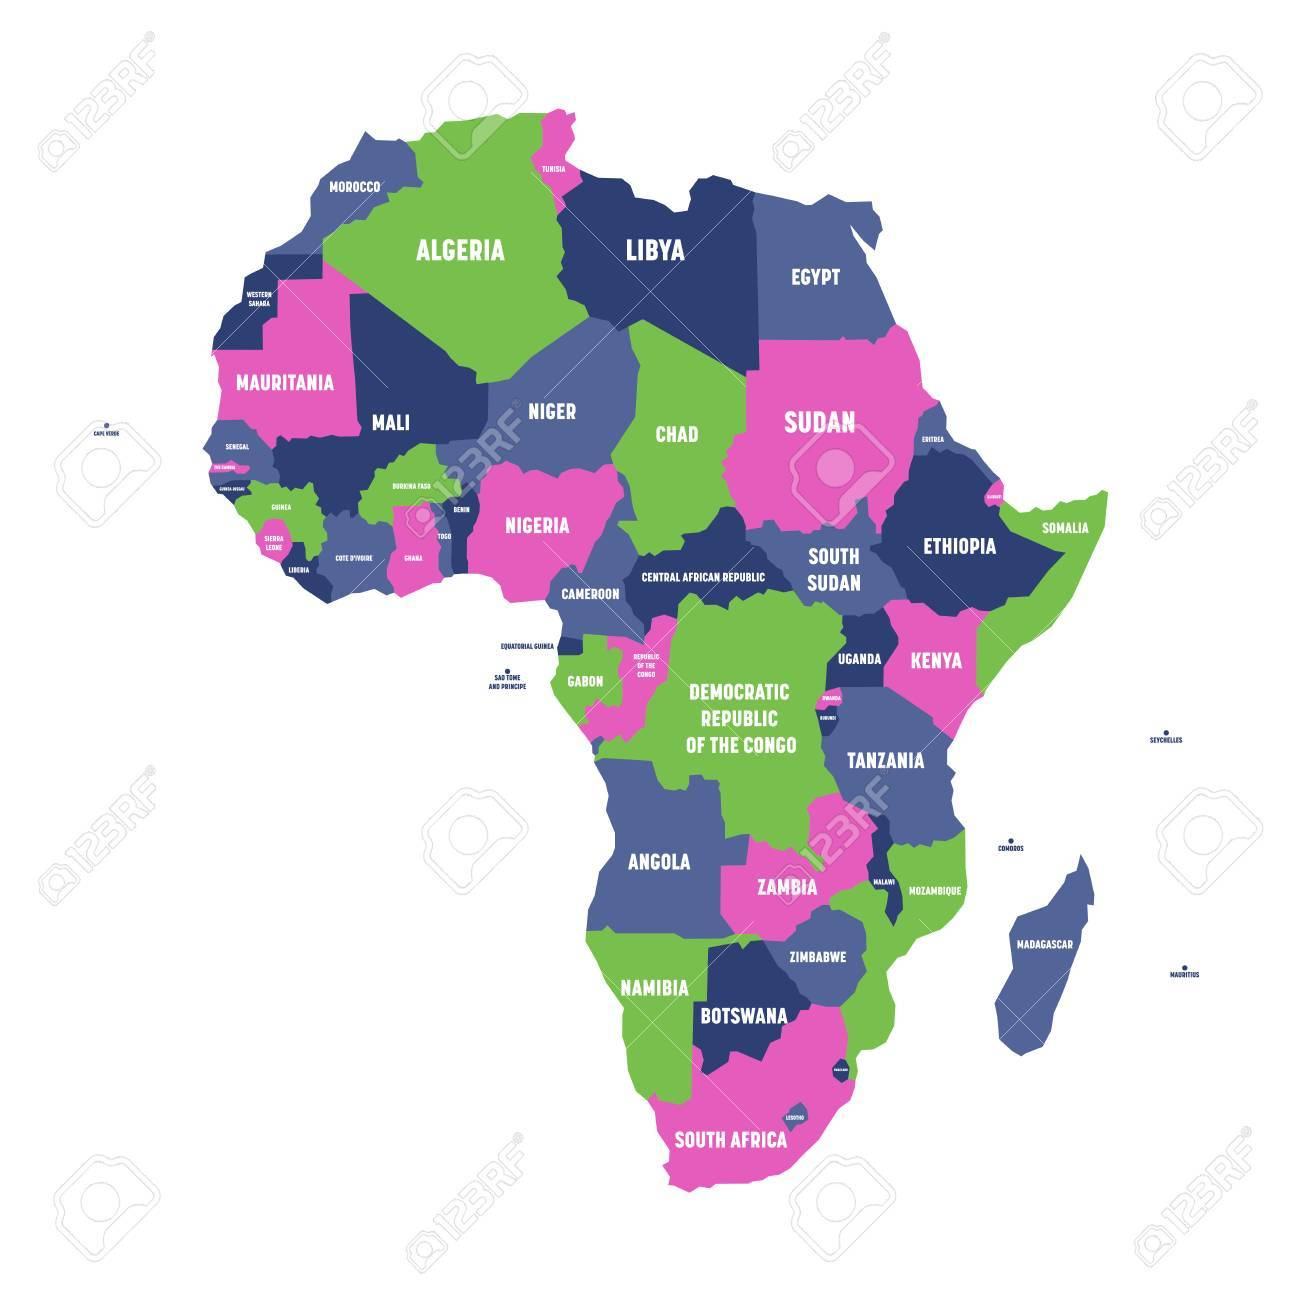 map of africa with labels Multicolored Political Map Of Africa Continent With National map of africa with labels